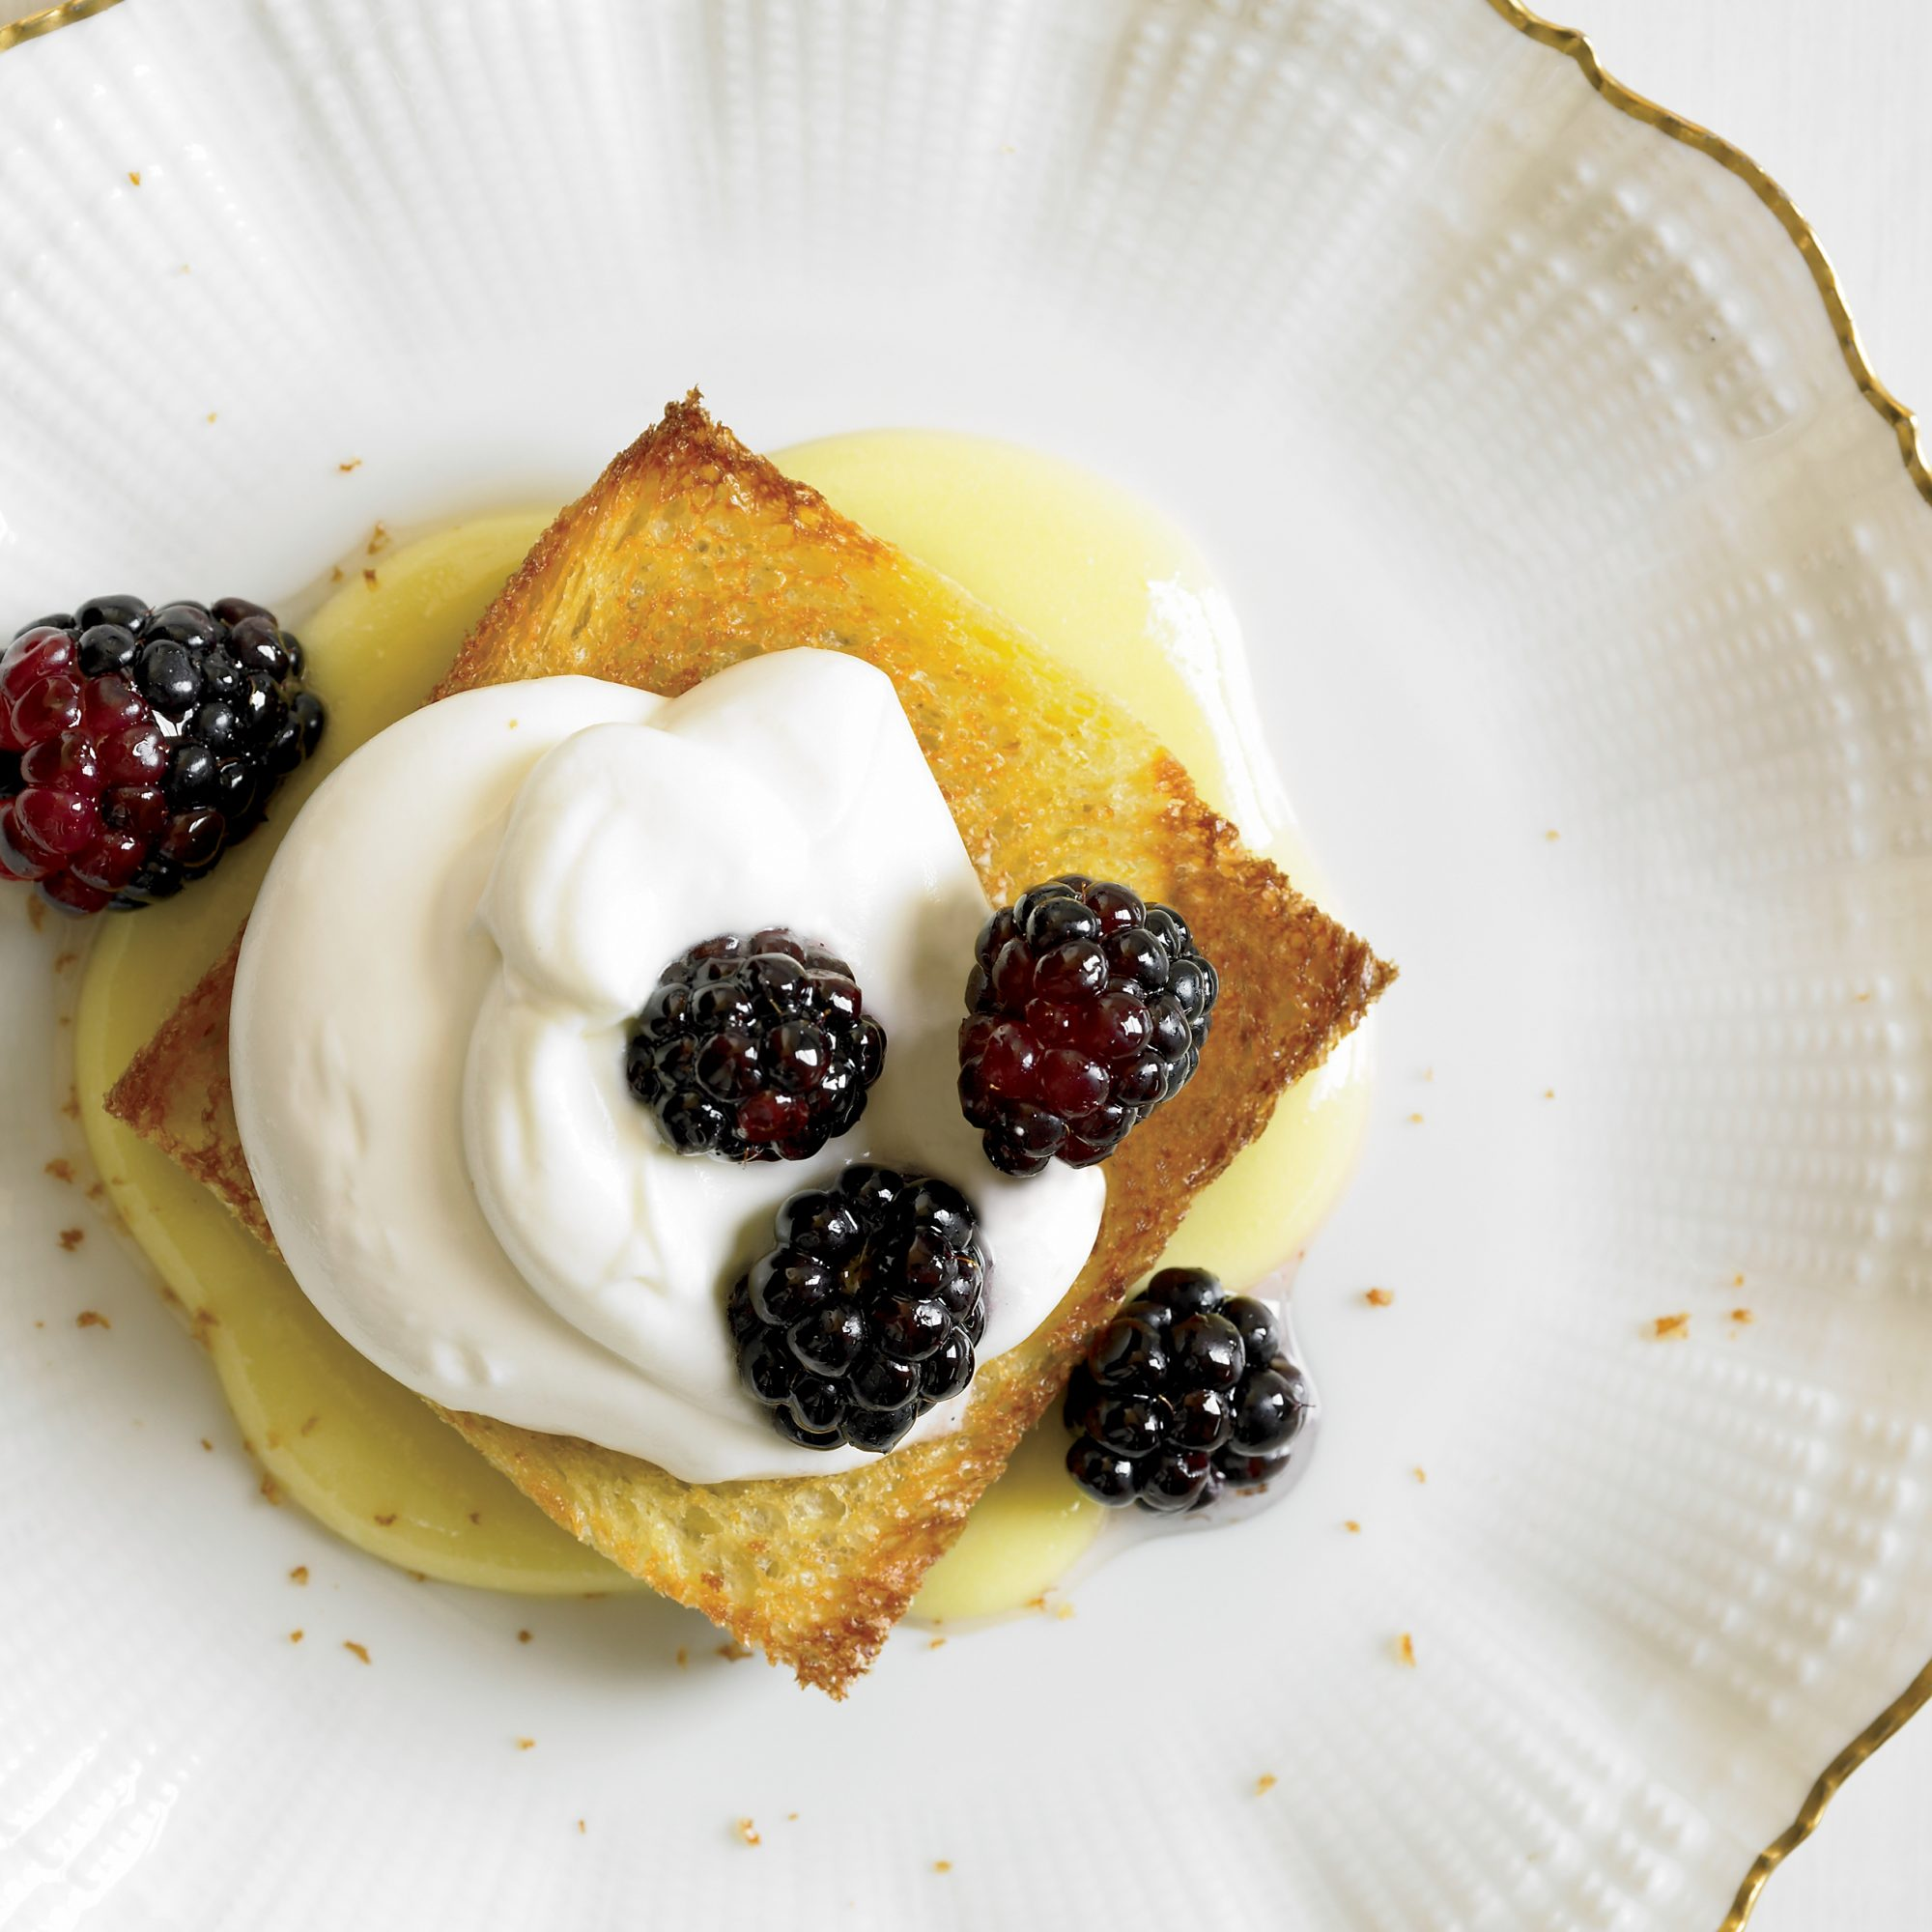 Blackberries with Lemon Cream and Toasted Brioche